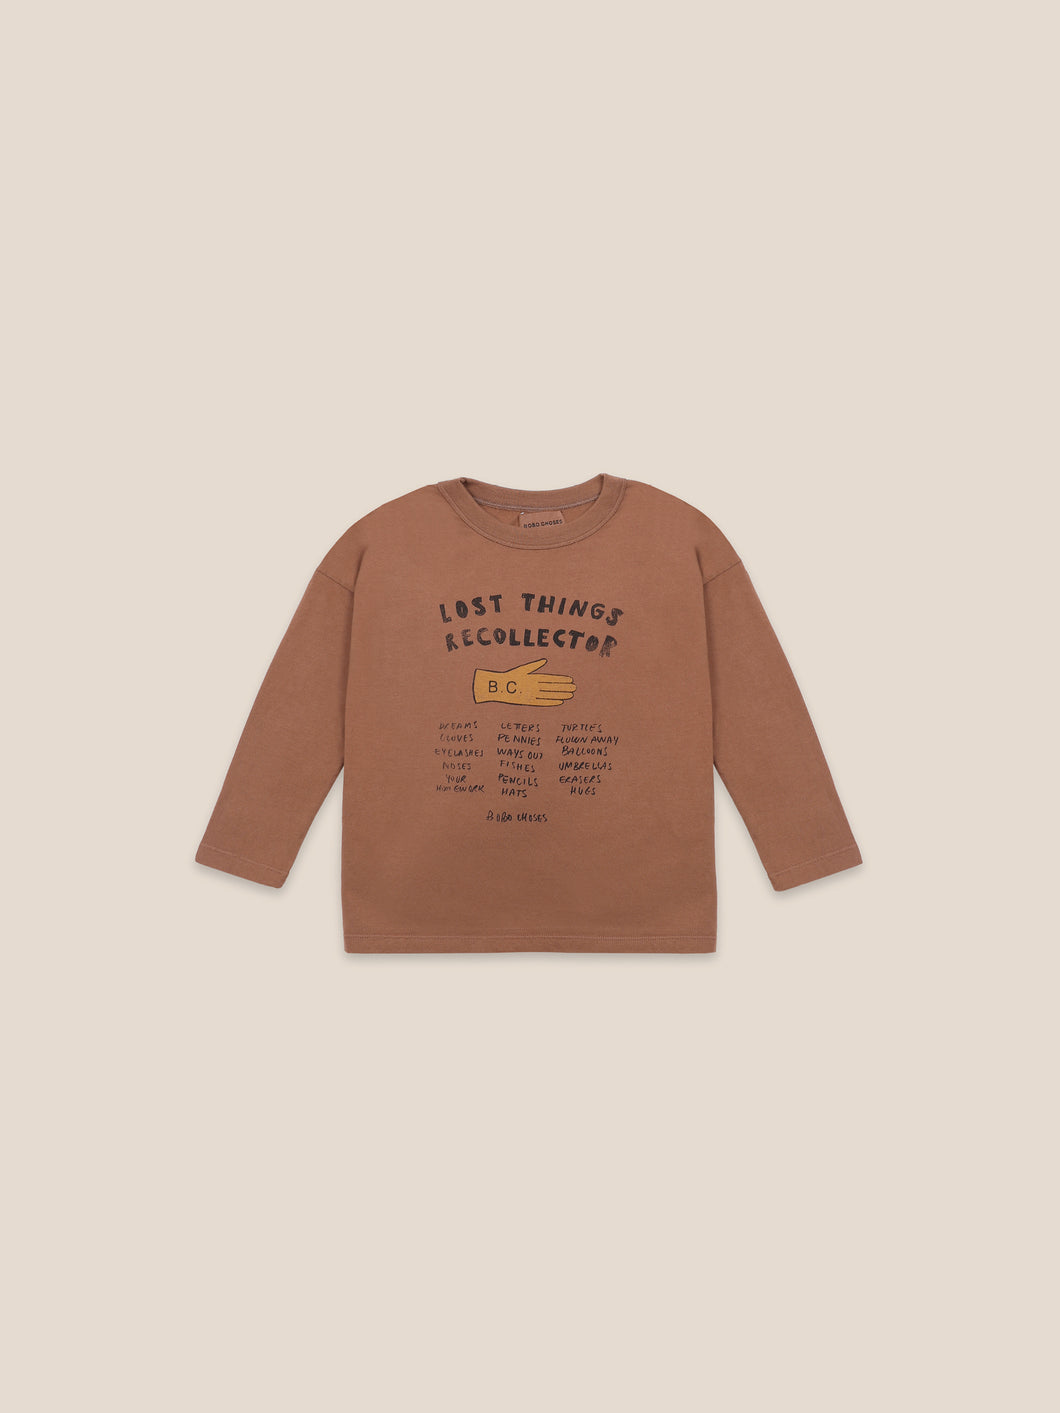 [50%OFF]Lost thing recollector long sleeve T-shirt